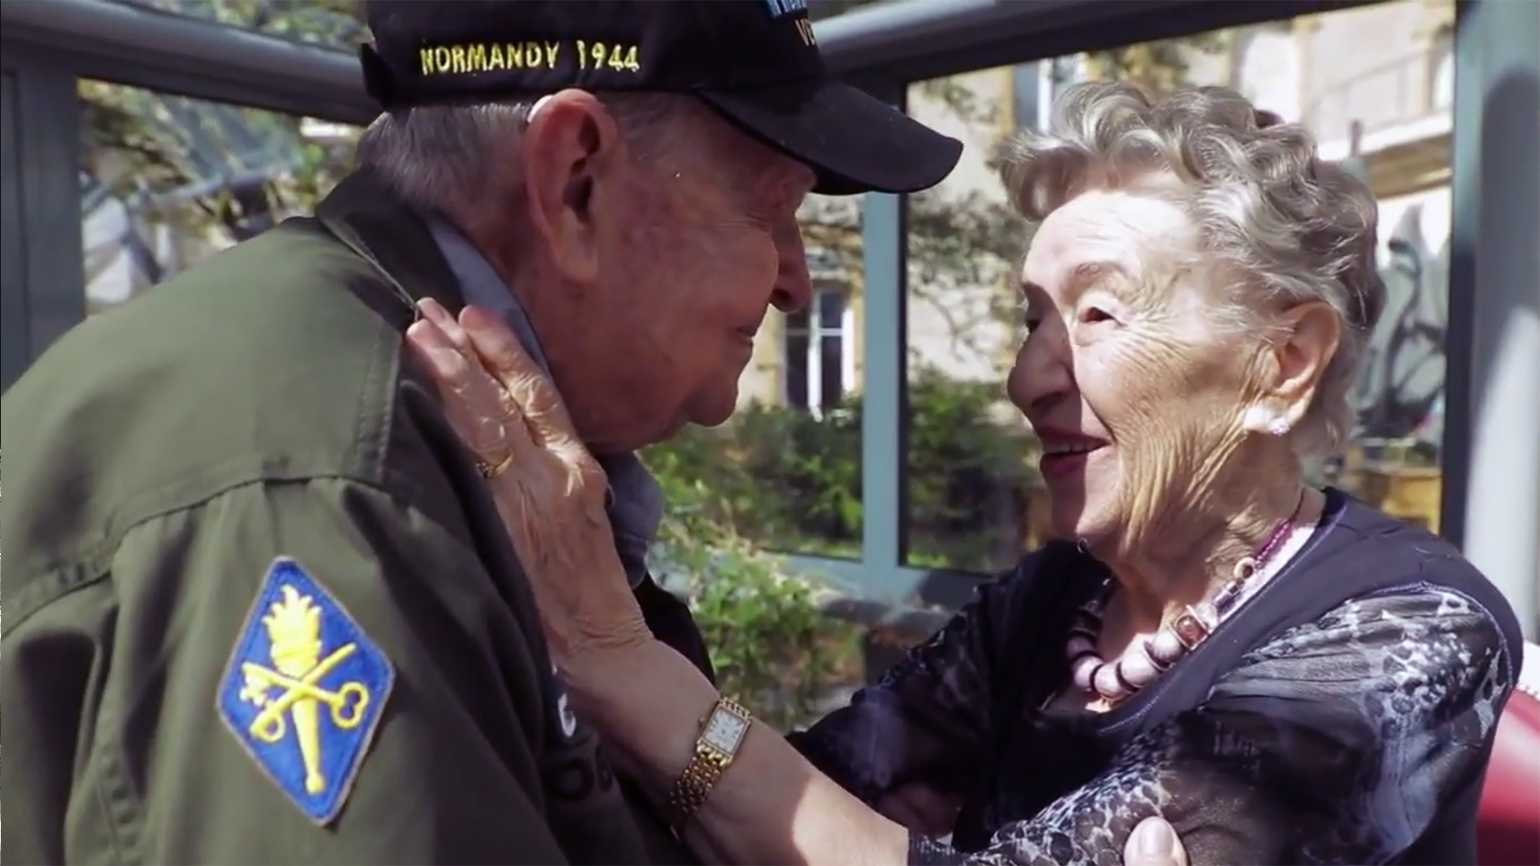 K. T. and Jeannine are reunited after 75 years